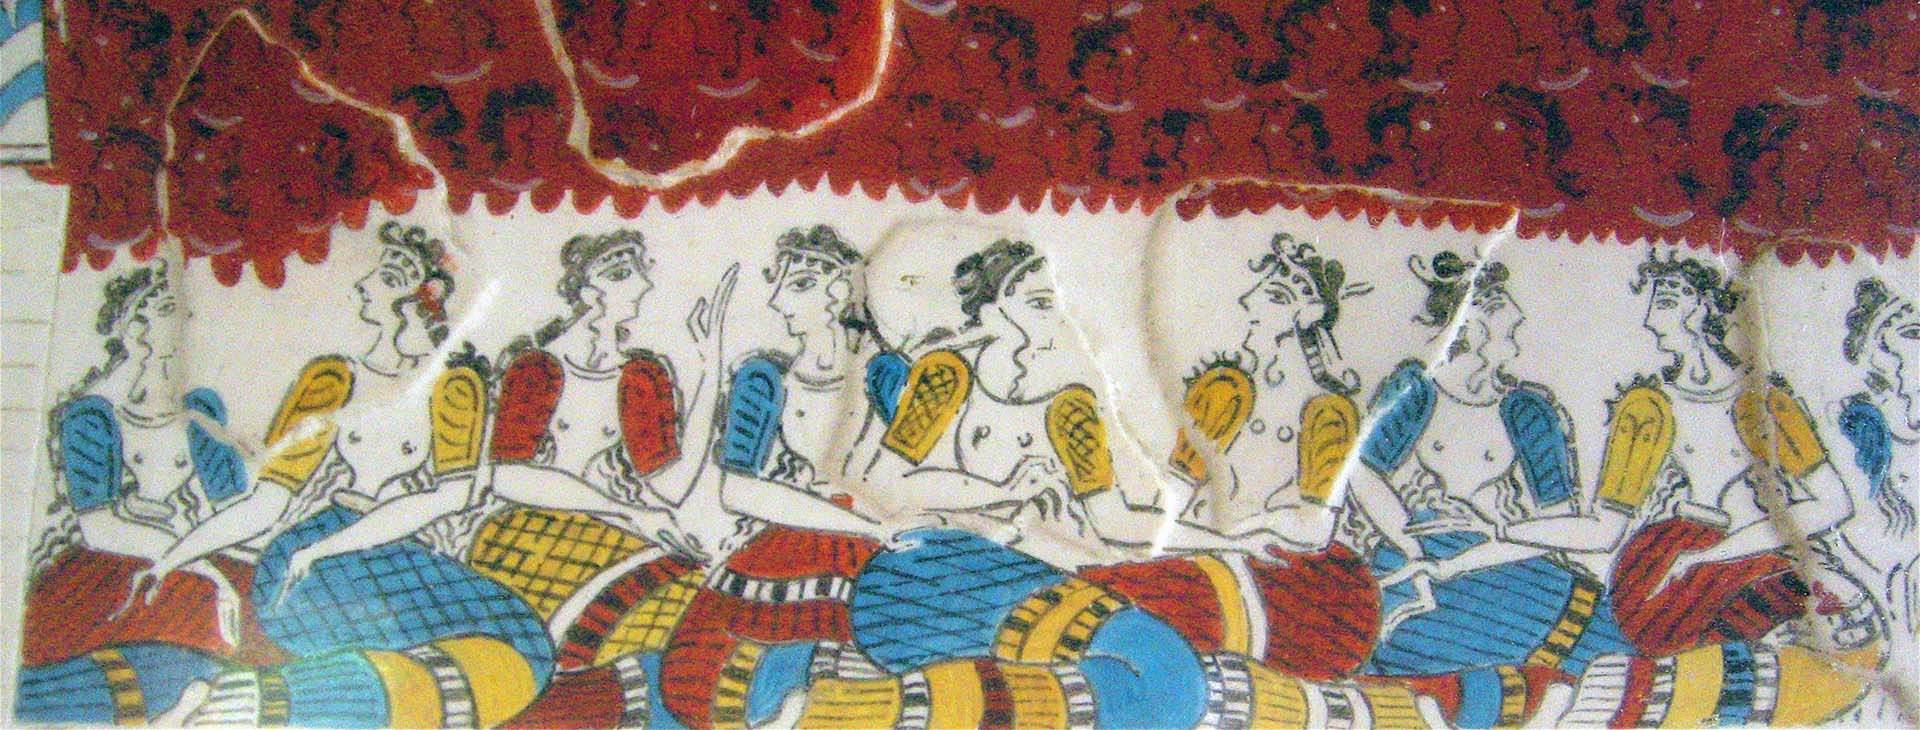 The ladies of the court, fresco at the Minoan palace of Knossos, Heraklion